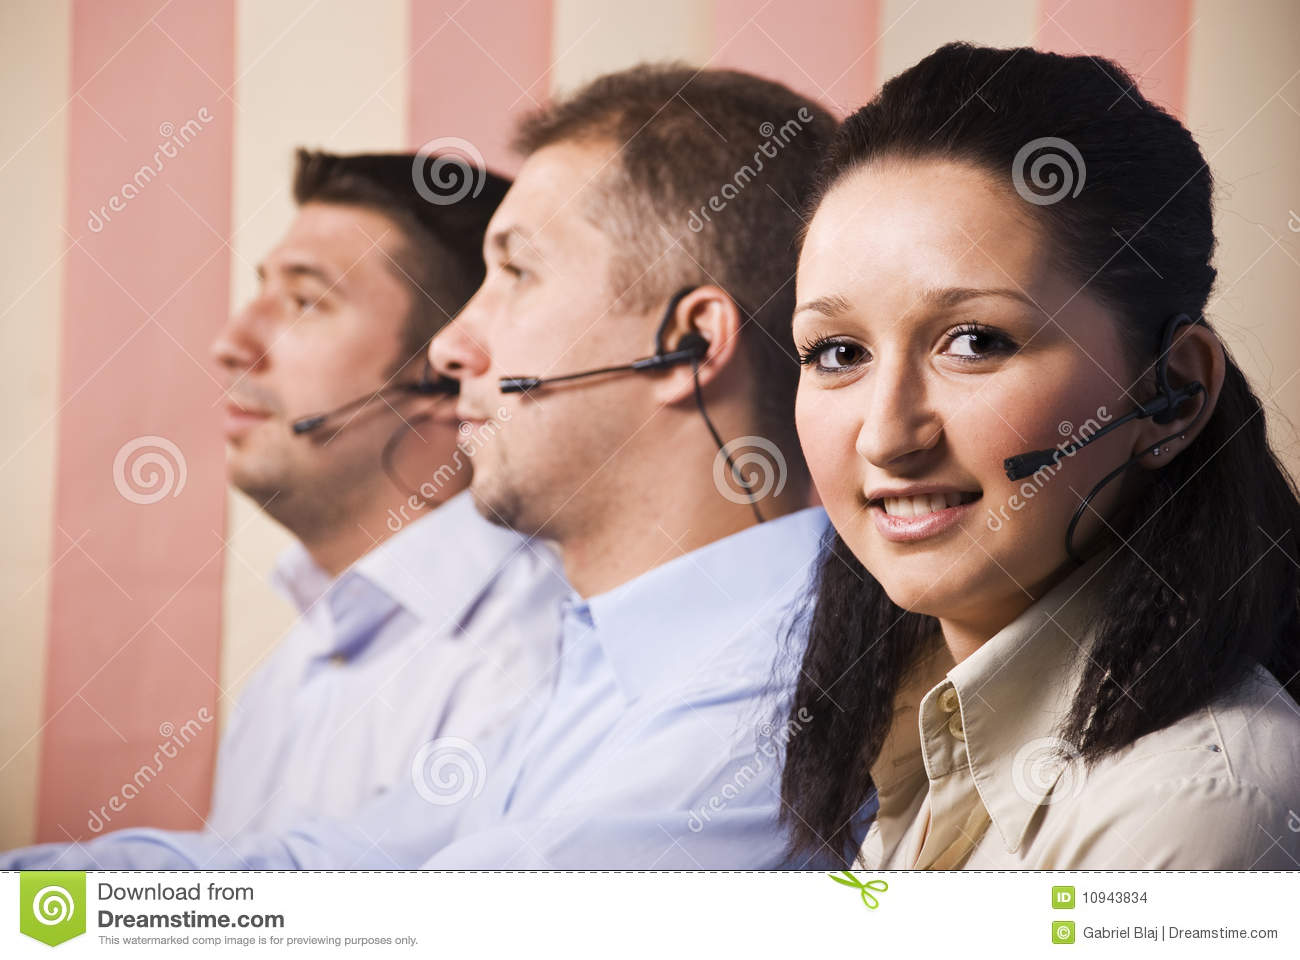 People with headset working in a call centre young woman facing and